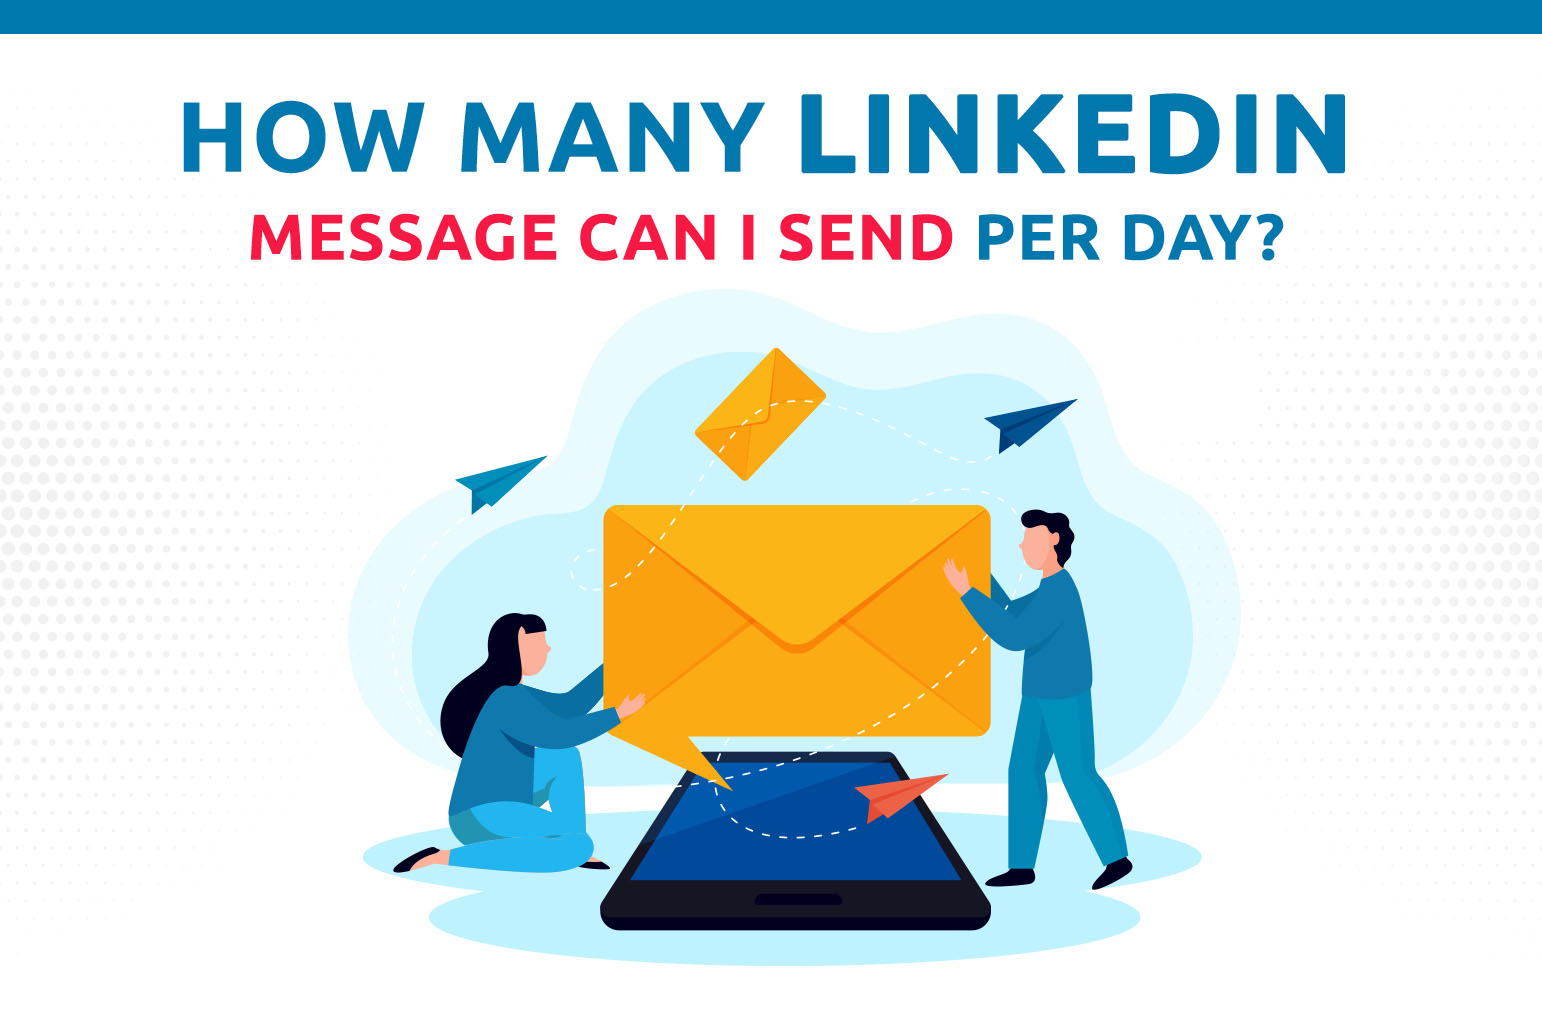 How Many LinkedIn Messages Can I Send Per Day?